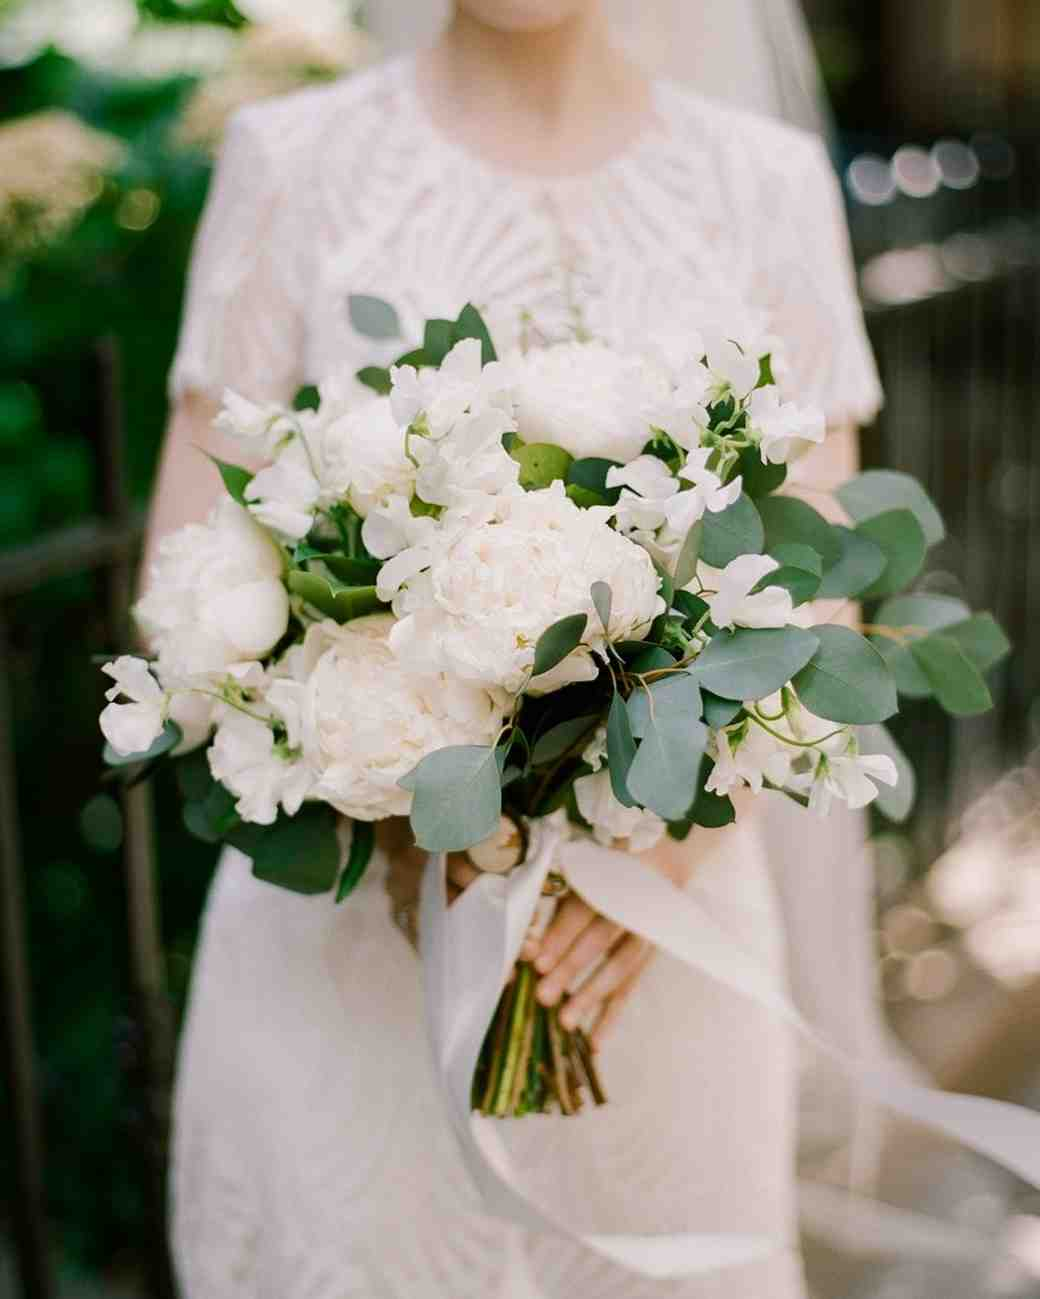 An All-White Wedding Bouquet